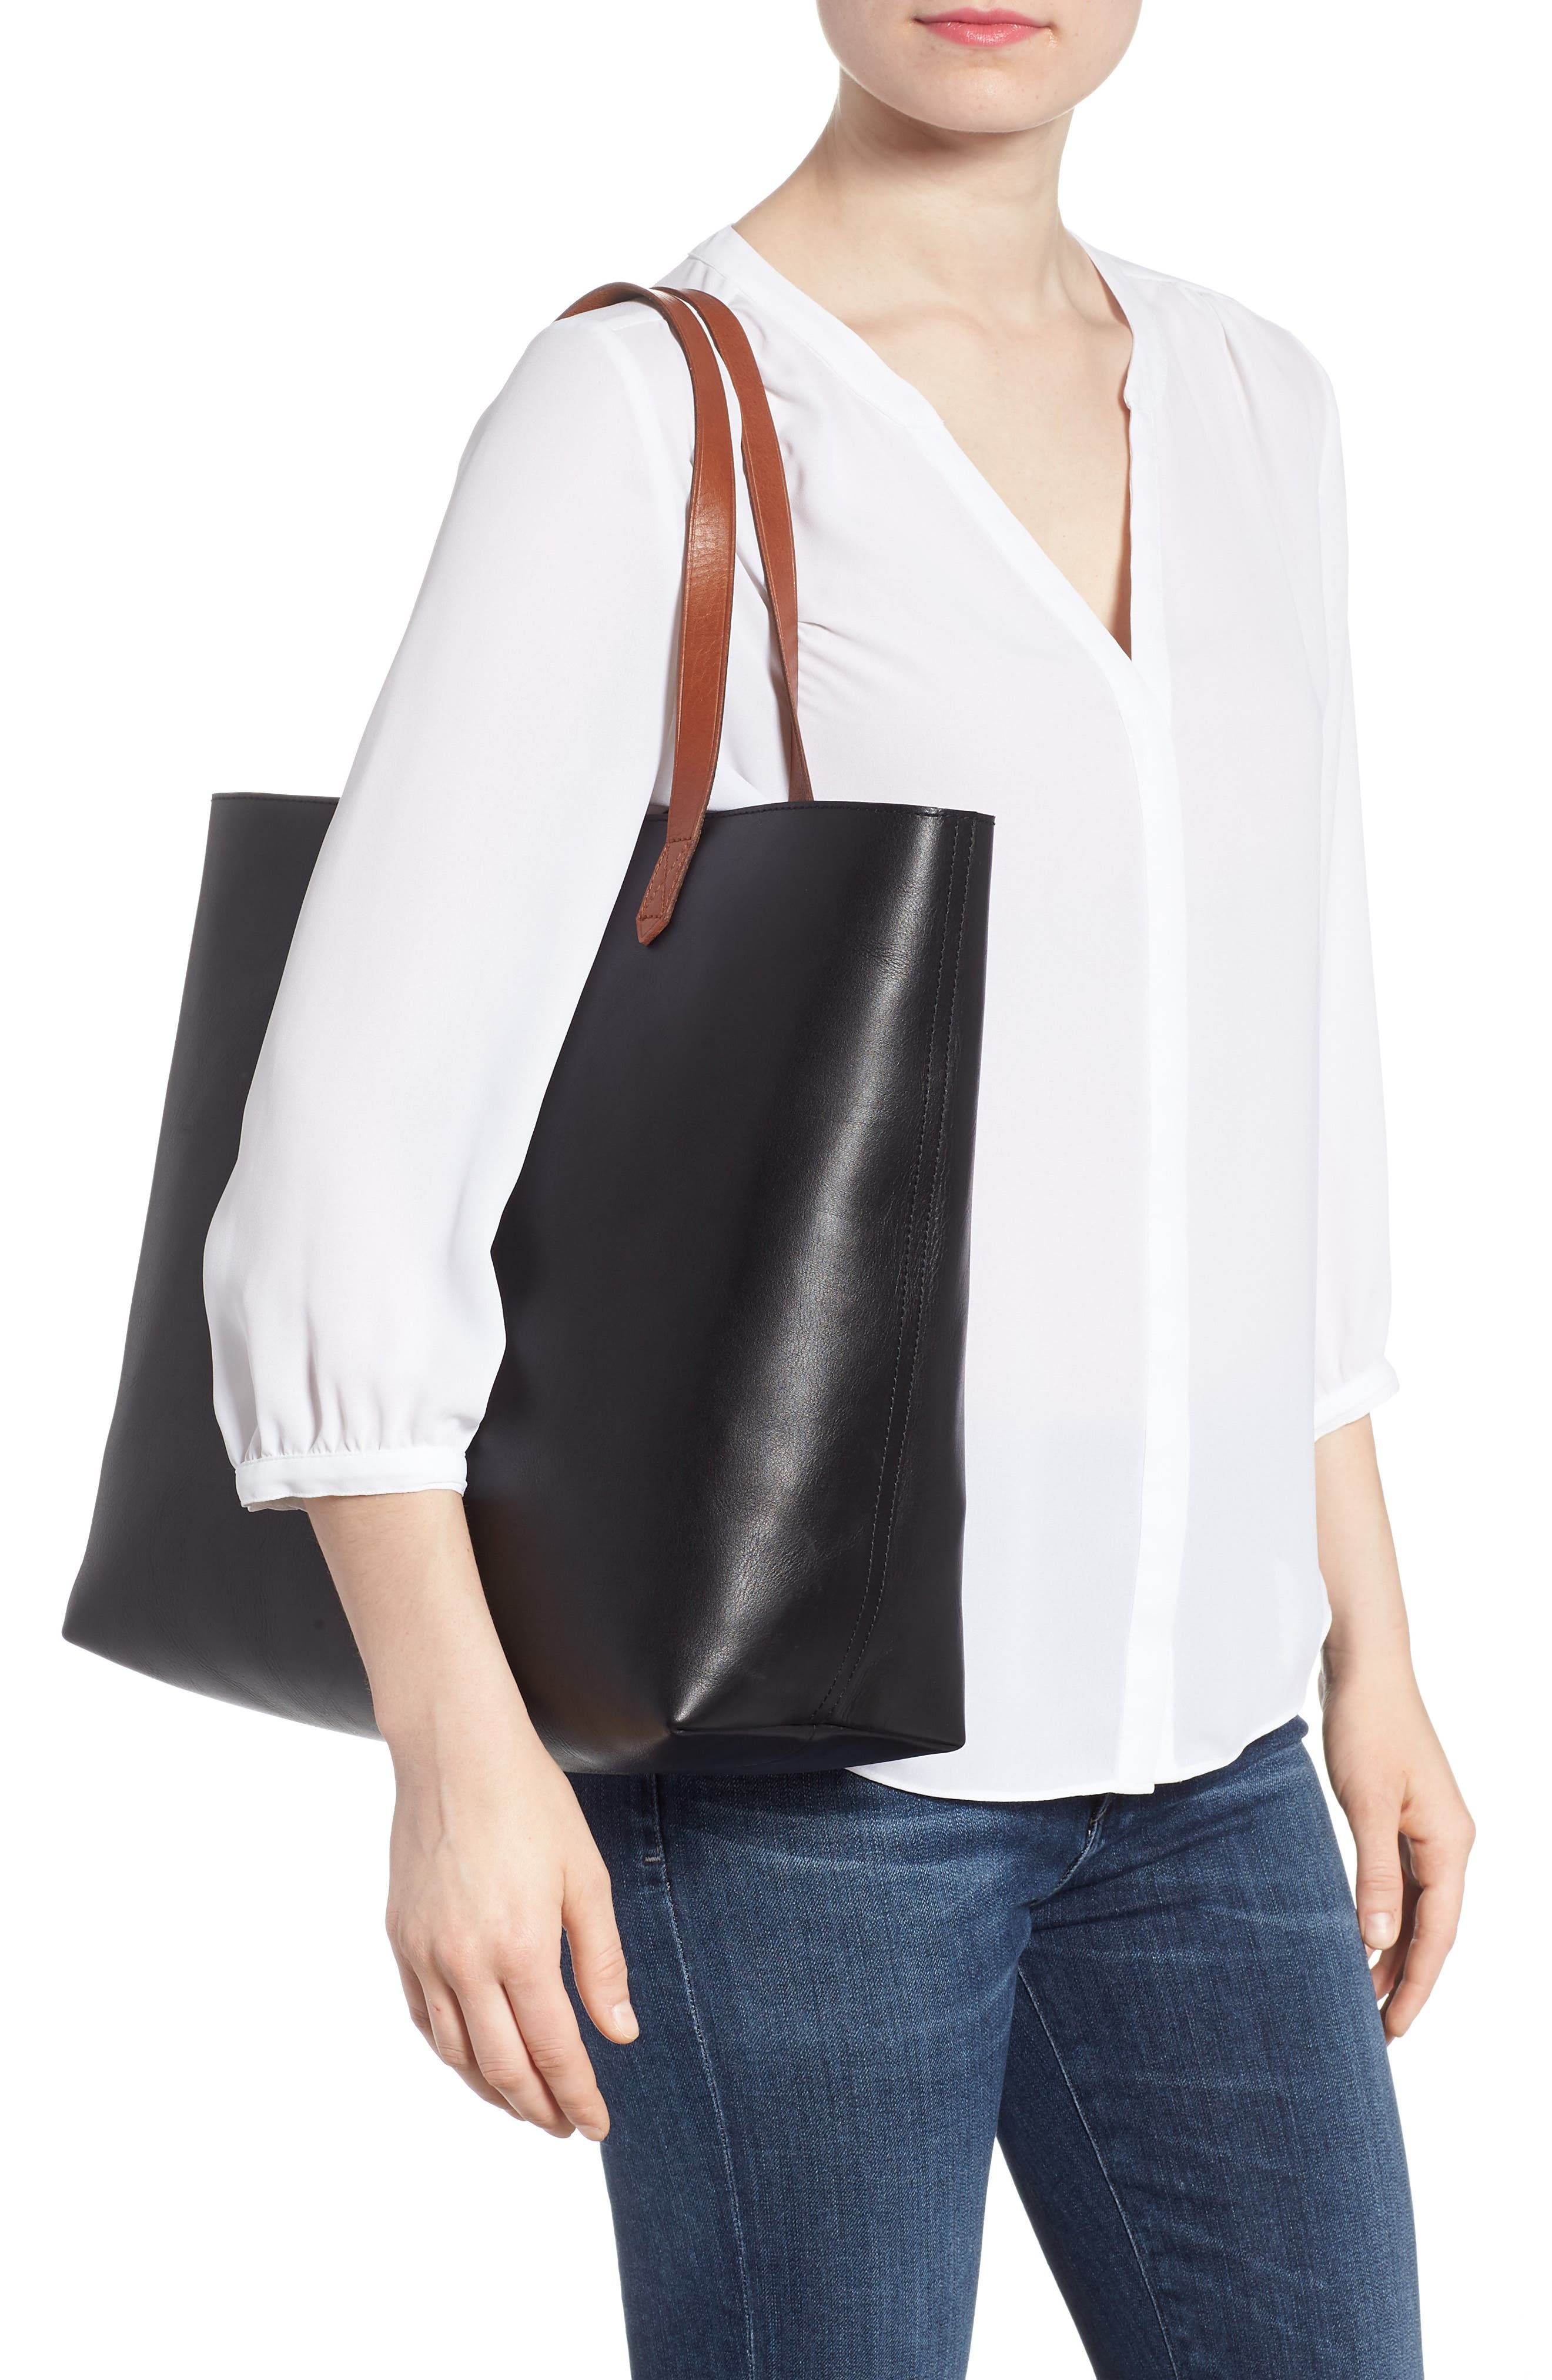 MADEWELL, Zip Top Transport Leather Tote, Alternate thumbnail 2, color, TRUE BLACK W/ BROWN